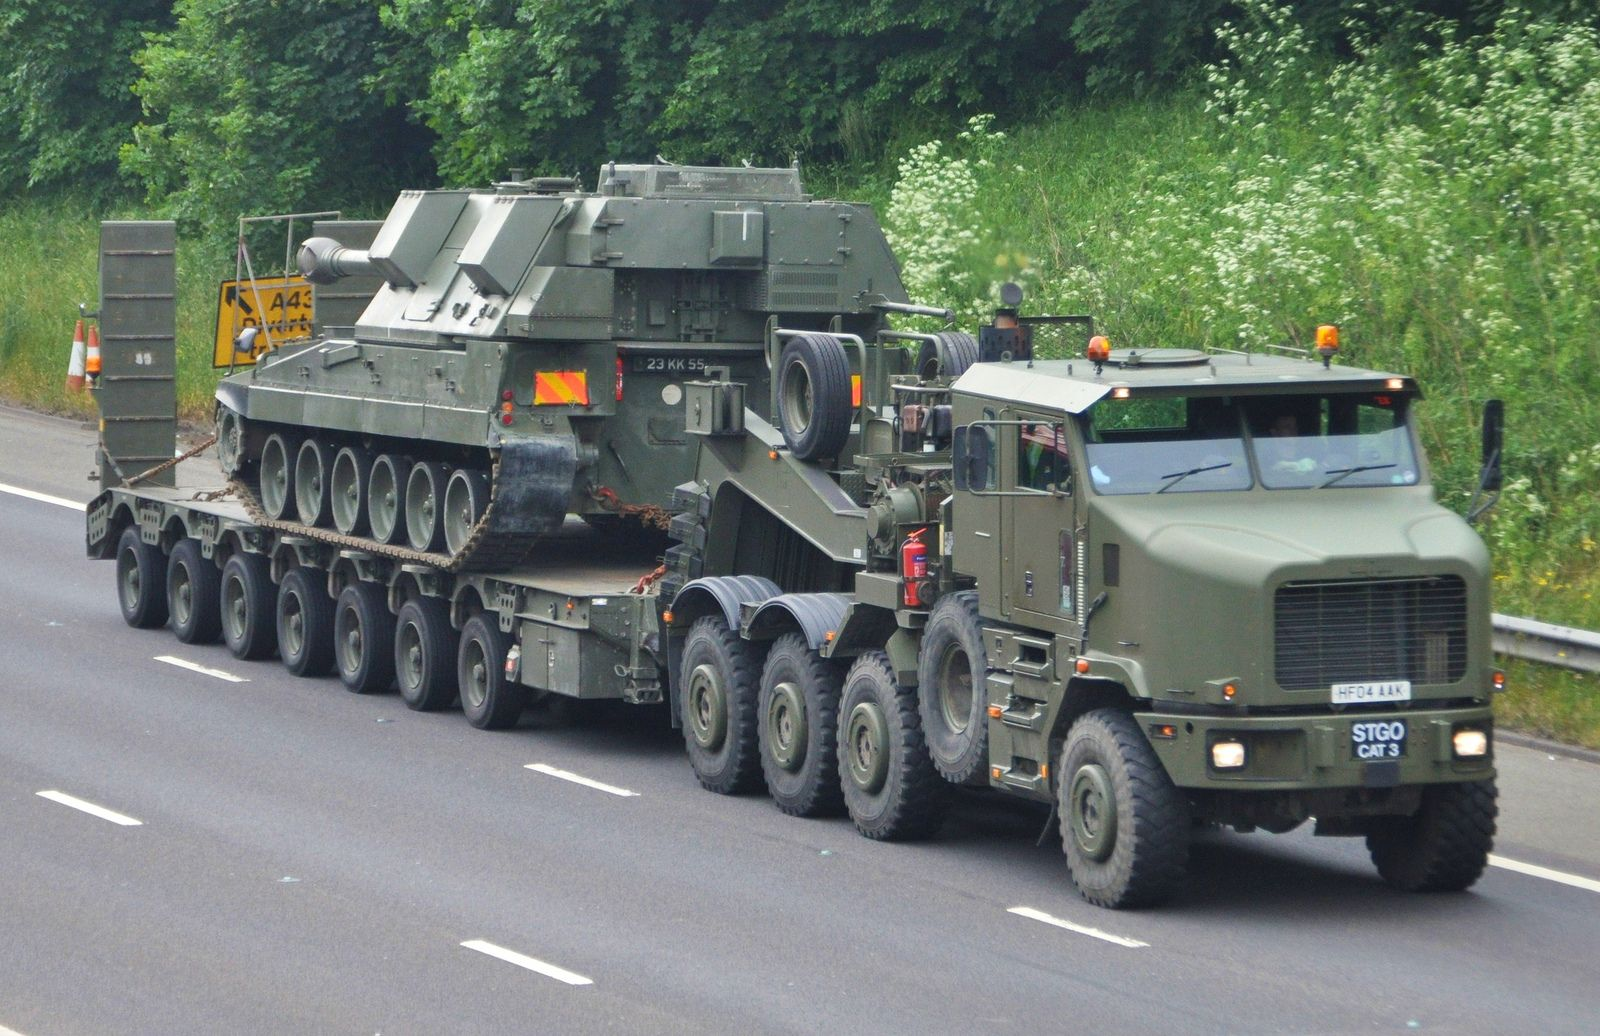 The Oshkosh 1070F (8×8) heavy equipment transporter (HET) became the new British Army heavy tank transporter in 2001 replacing the Scammel Commander. The vehicle has been in production by Oshkosh since 1992 and they have supplied over 2,600 of them to the US Army in various engine configurations such as the 1070E and the 1070E1. The UK version (1070F) had to be supplied with compliance to European legislation on emissions (EURO III).